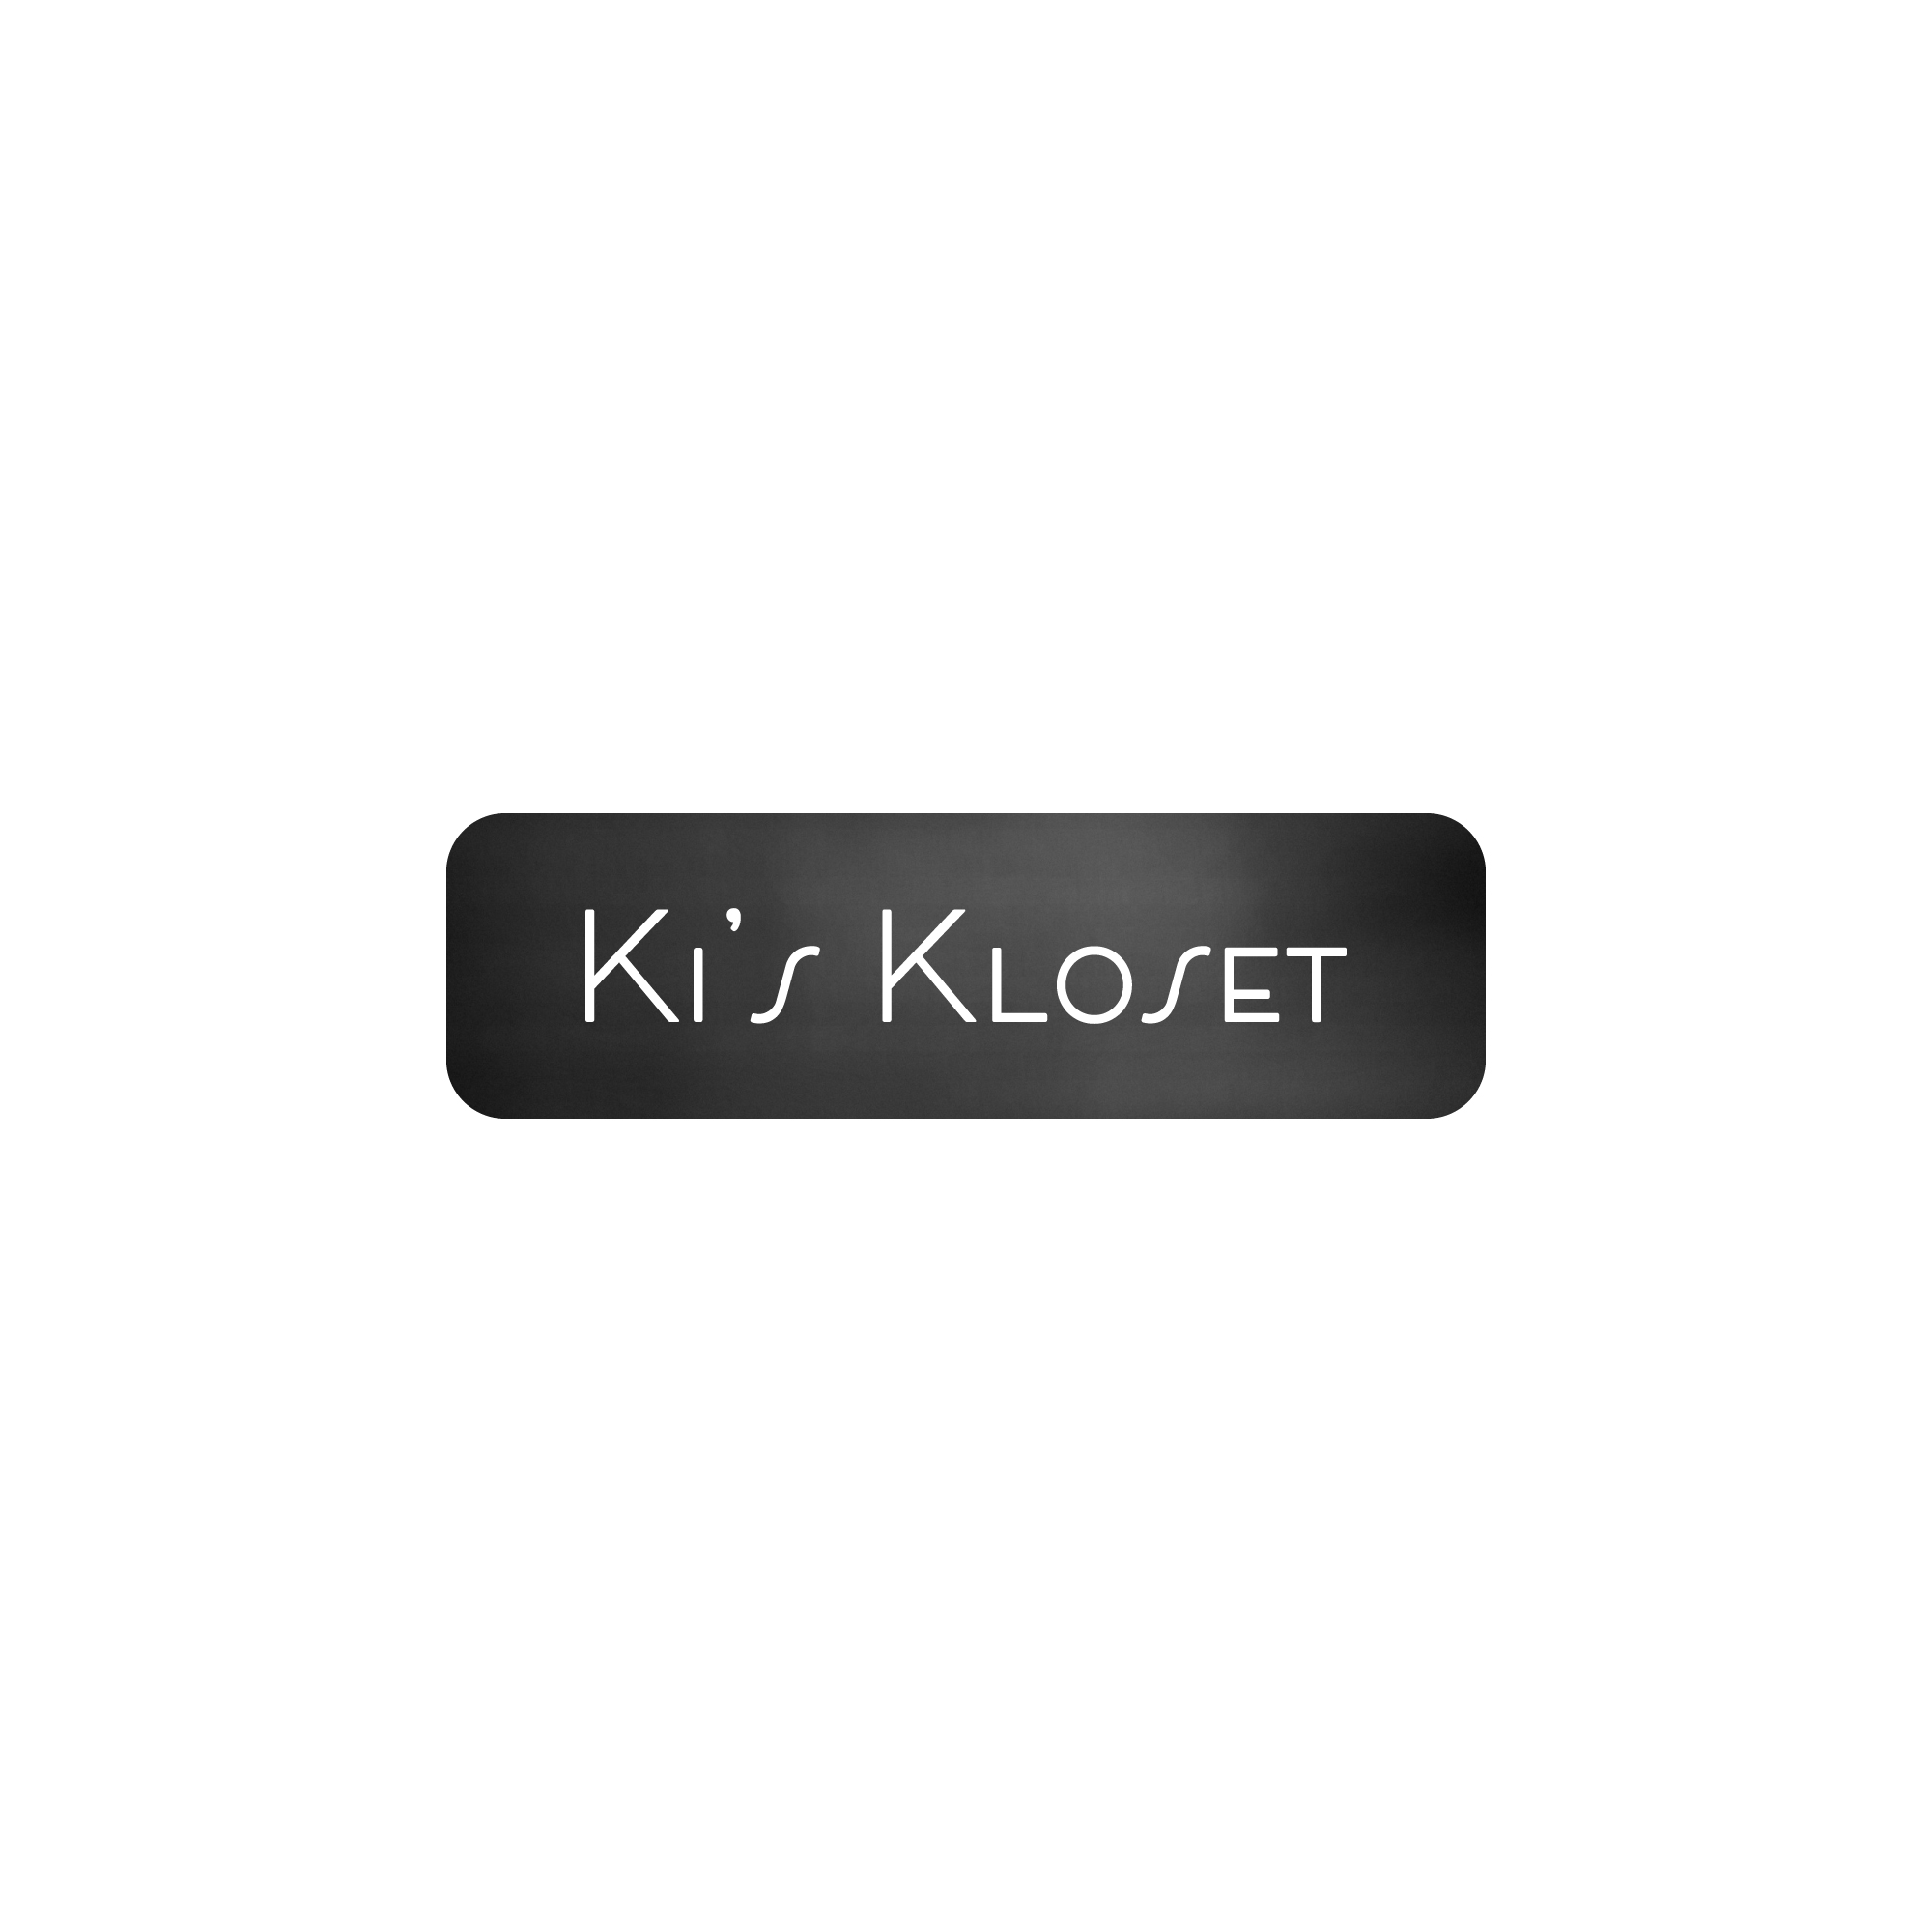 Ki's Kloset, the Gender-Neutral Kids Clothing Brand Committed to Quality, Inclusivity, and Sustainability